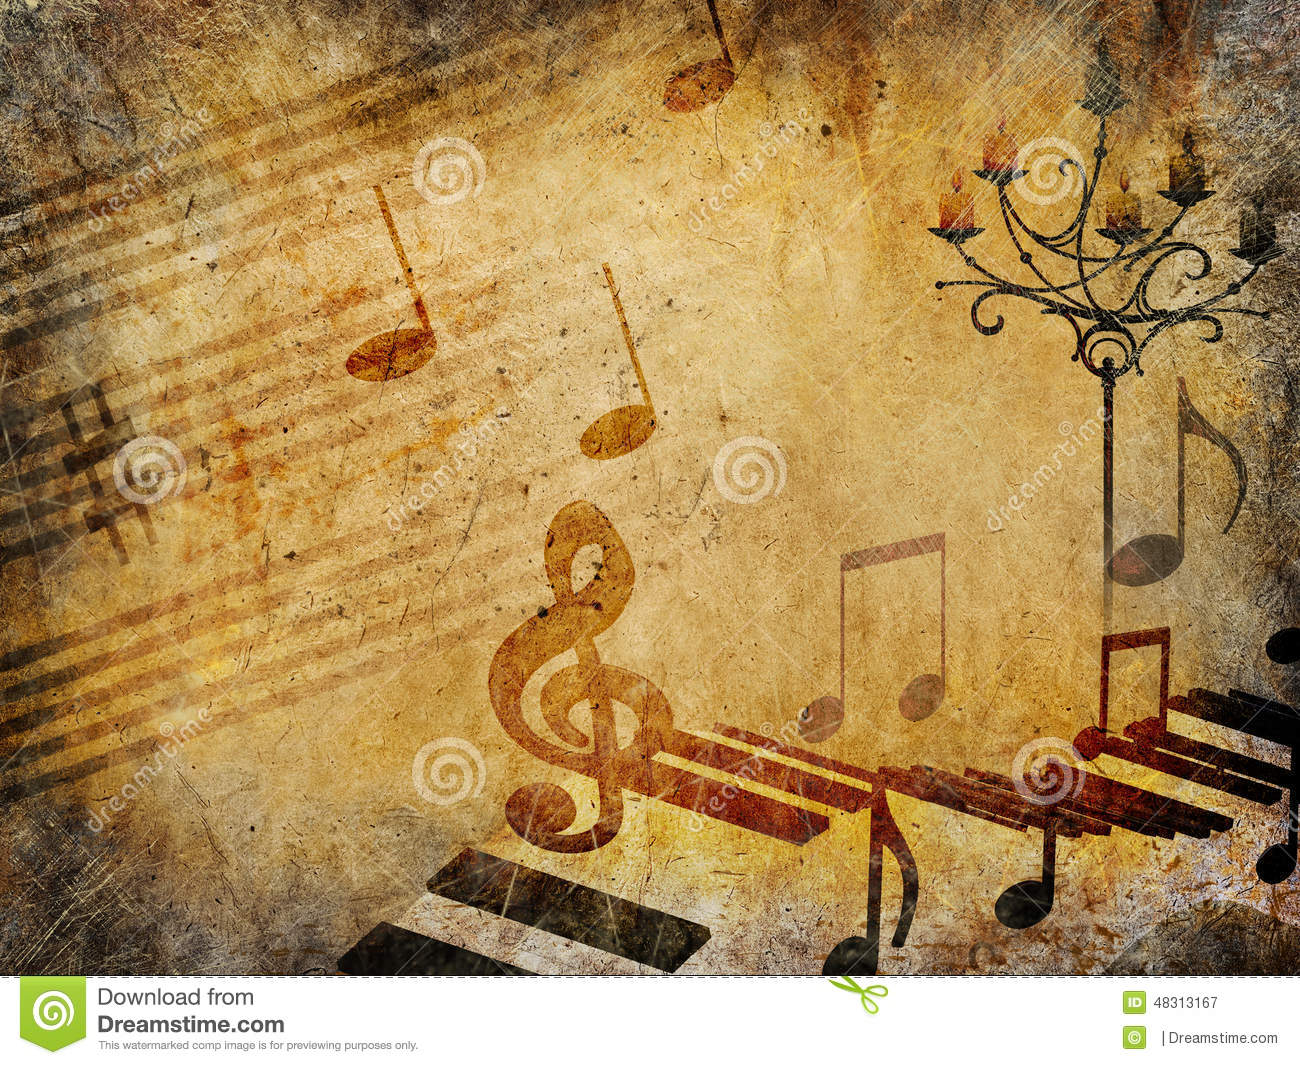 Wallpaper Border For Teenage Girl Music Vintage Background Grunge Style Stock Illustration